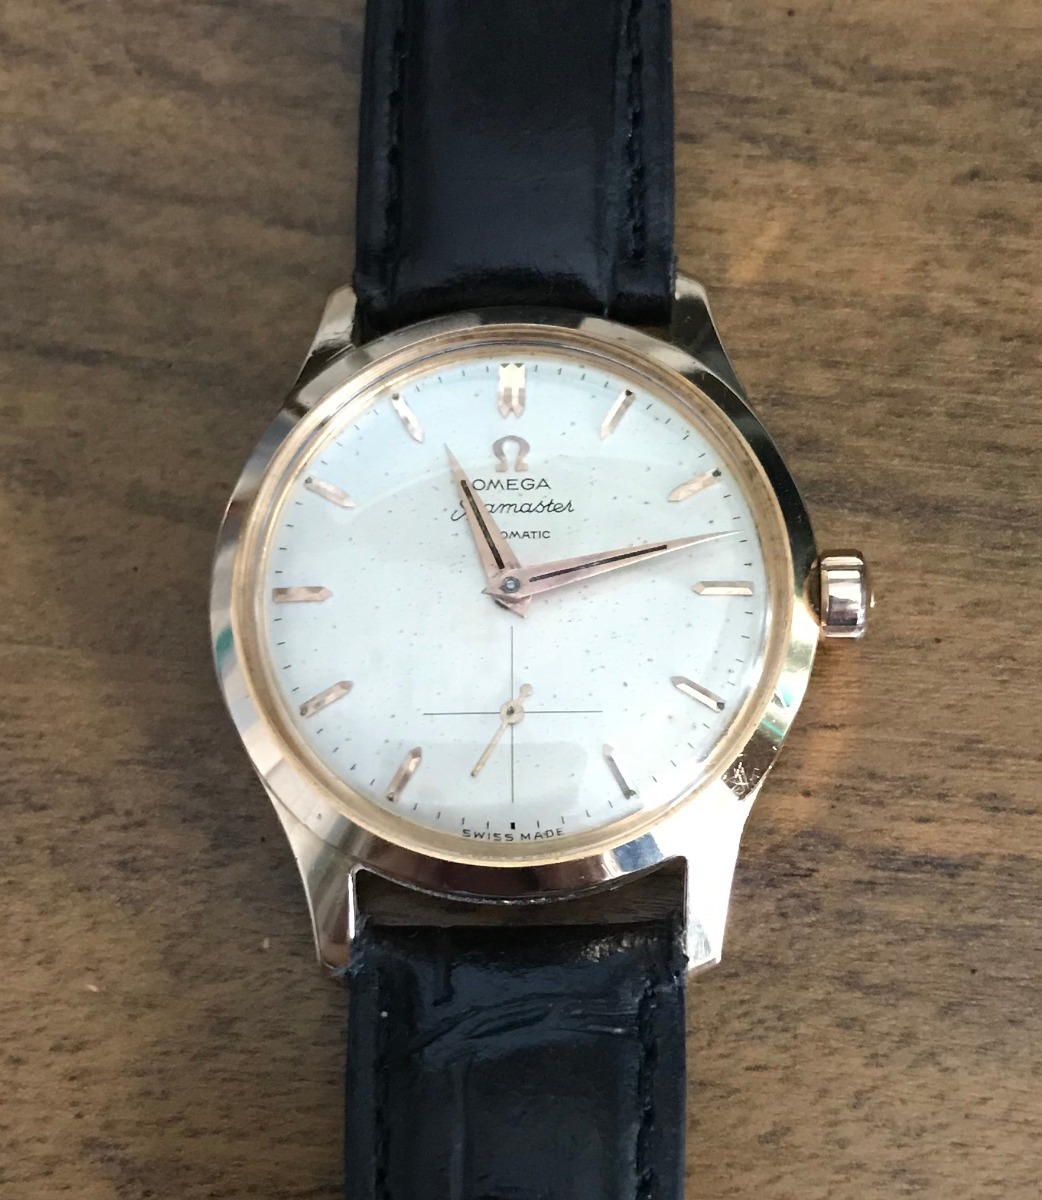 459759f848d Relogio Omega - Seamaster - Ouro 18 Kt - Automatic - 34 Mm - R ...